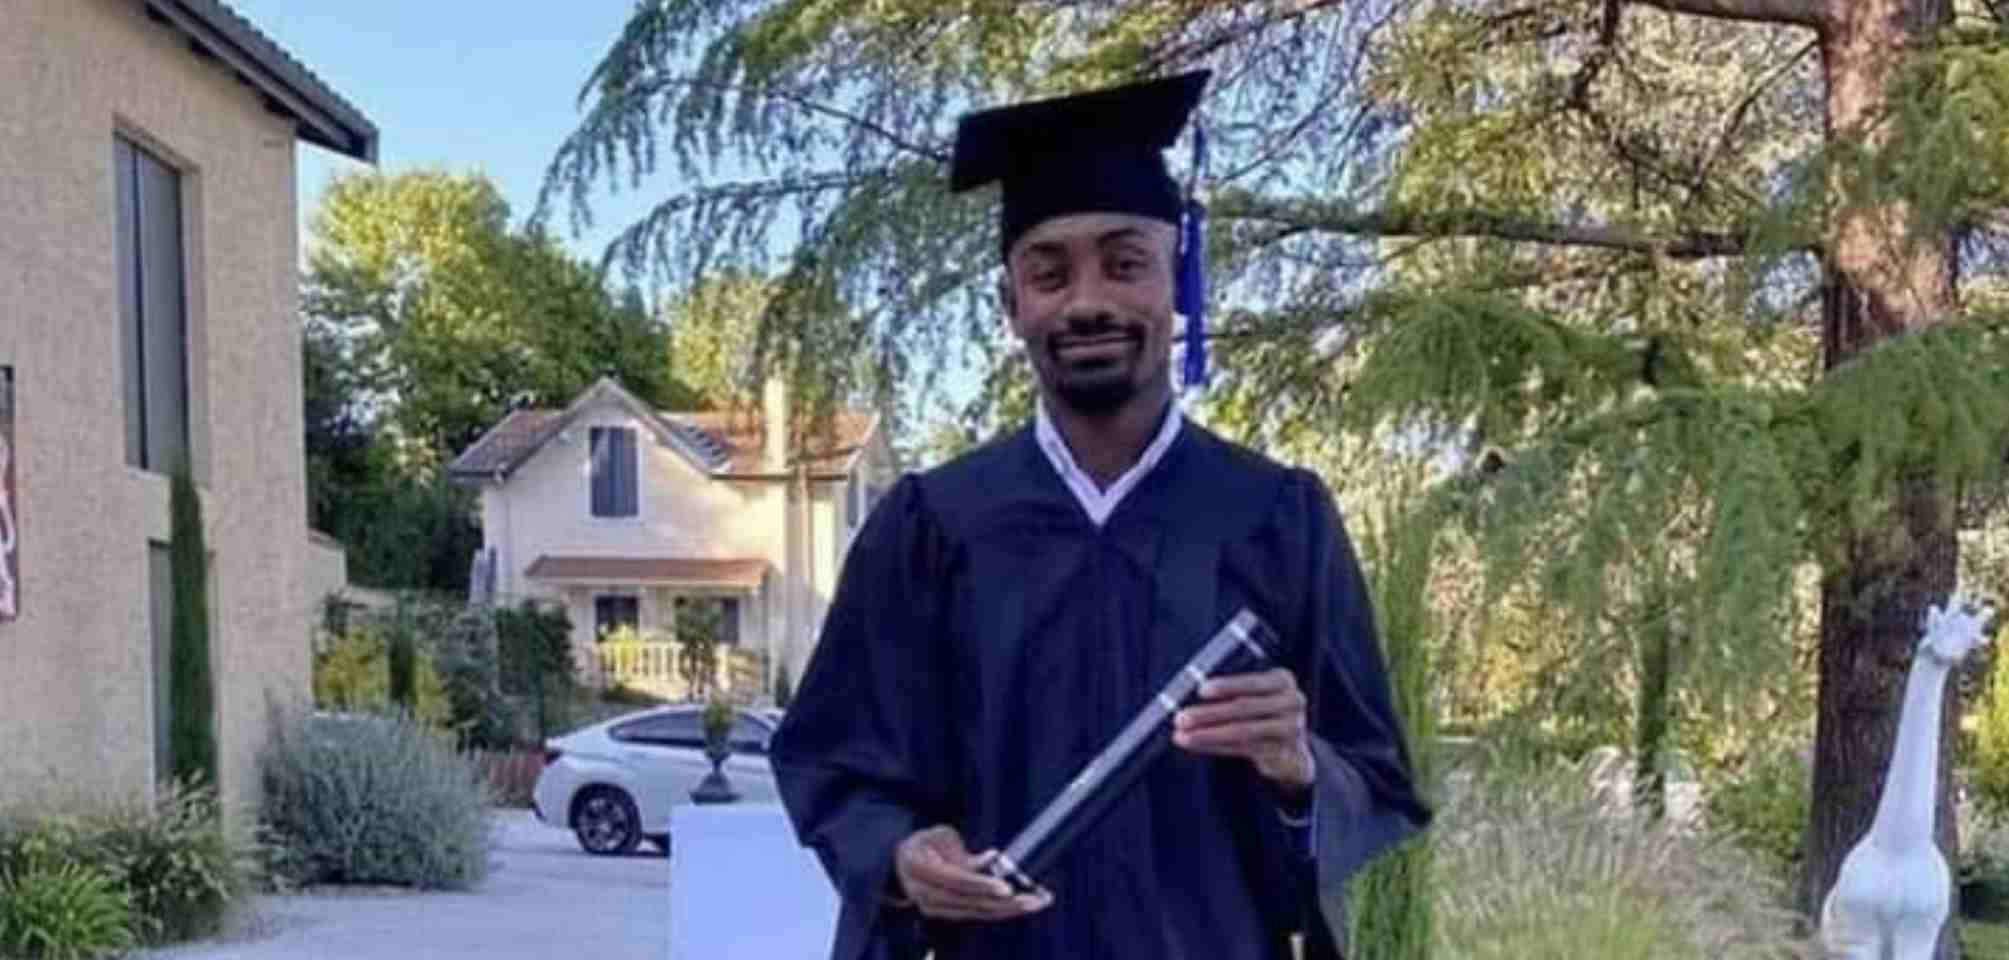 PHOTO: Former Chelsea player, Salomon Kalou GRADUATES with degree in Business Administration from French University